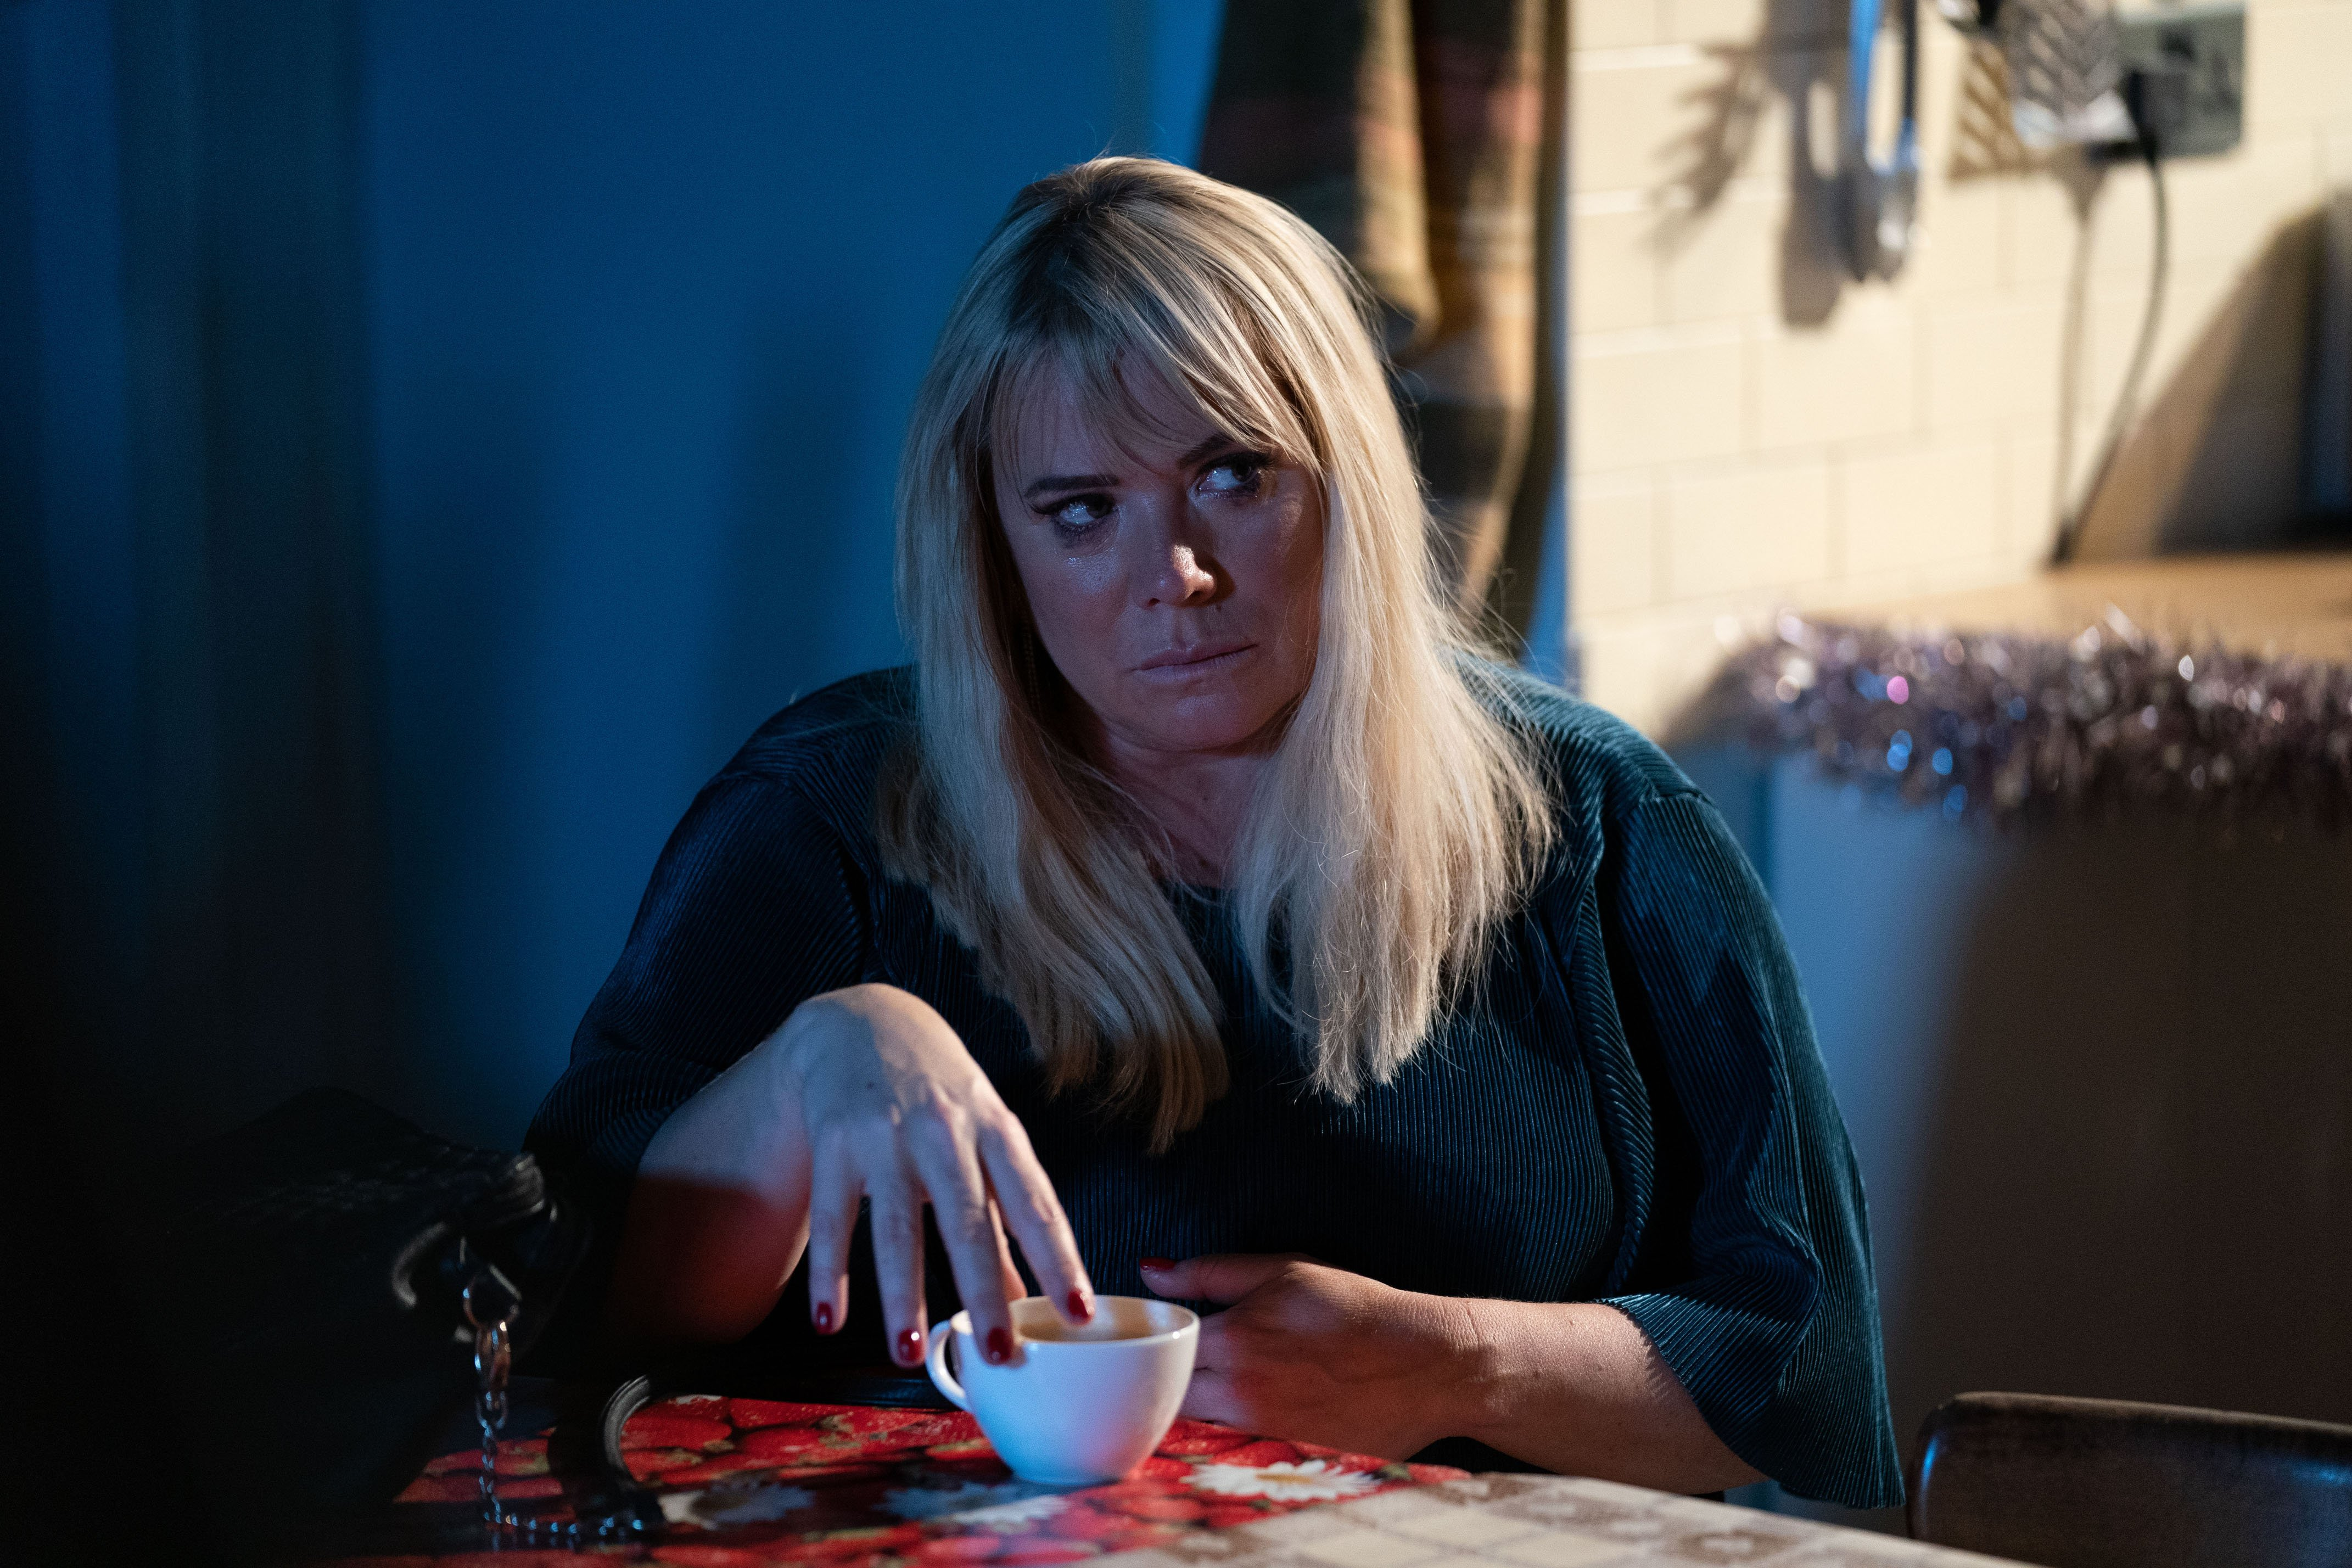 EastEnders' Letitia Dean teases 'tense' and 'dramatic' twist in Christmas episode